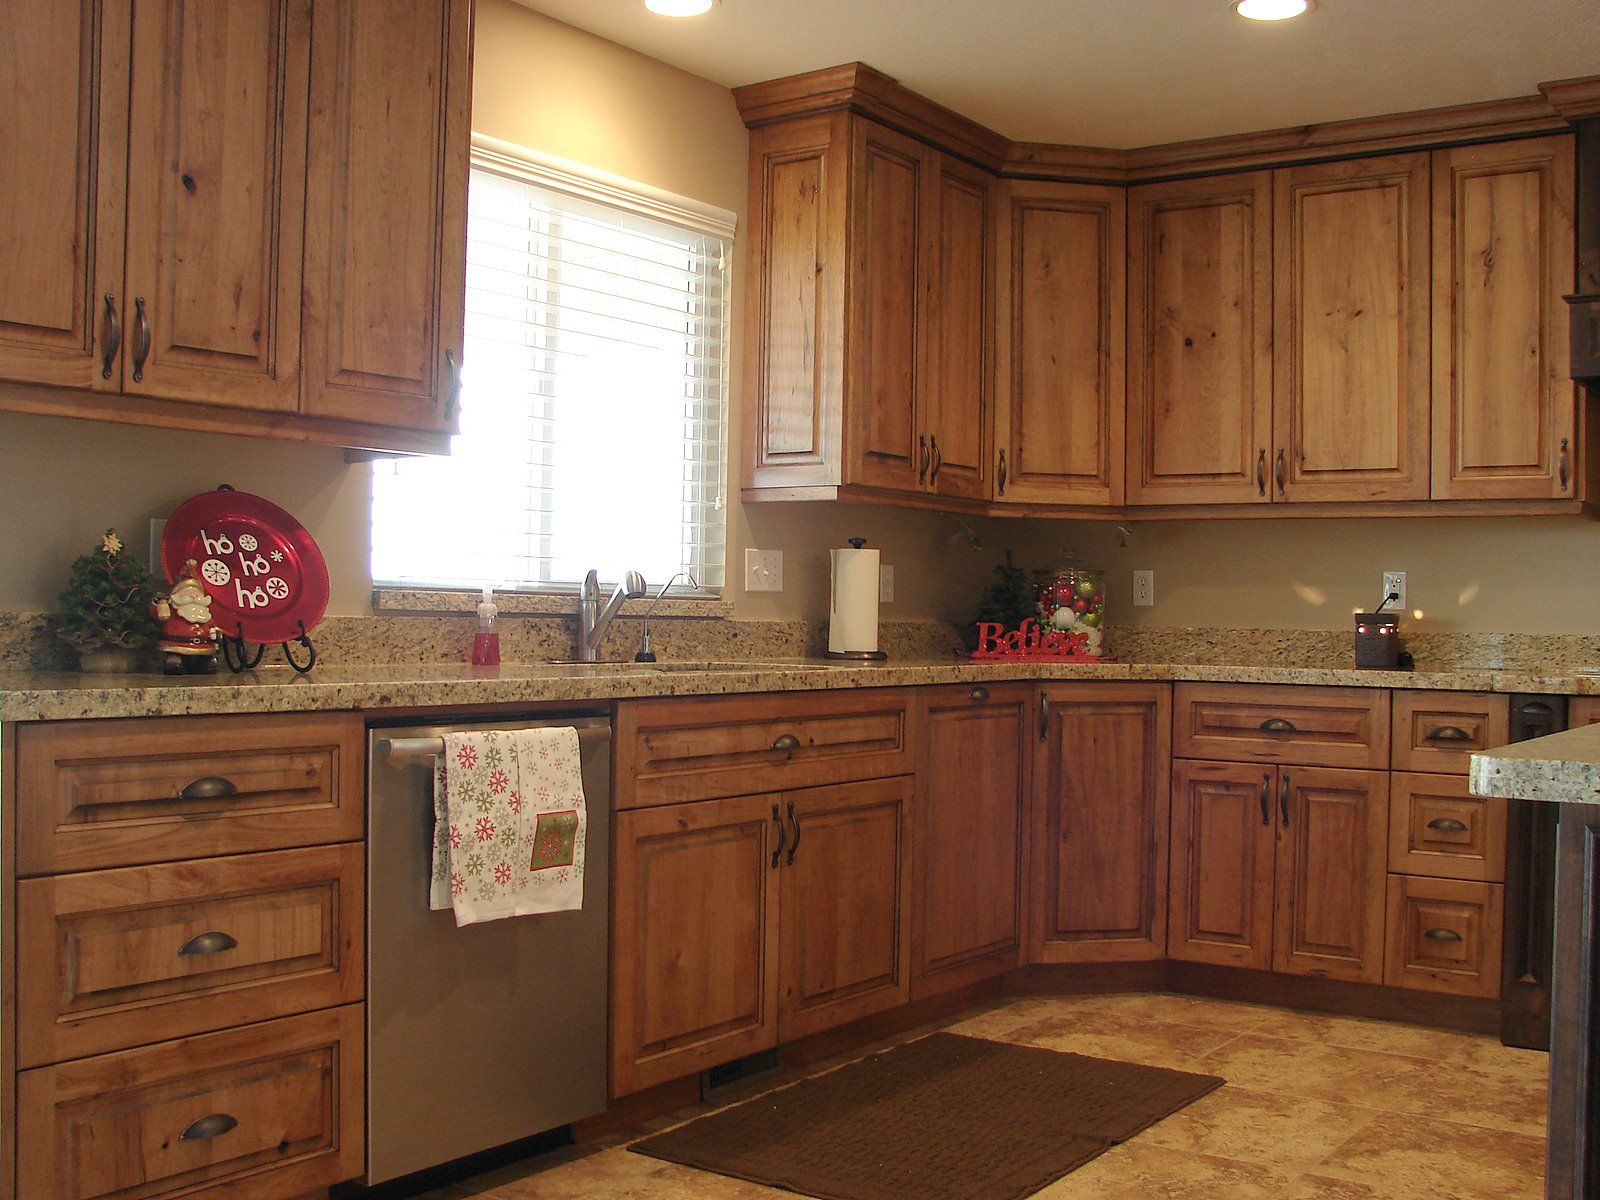 Kitchen Cabinets Rustic Style rustic farmhouse kitchen cabinets | rustic cherry cabinets